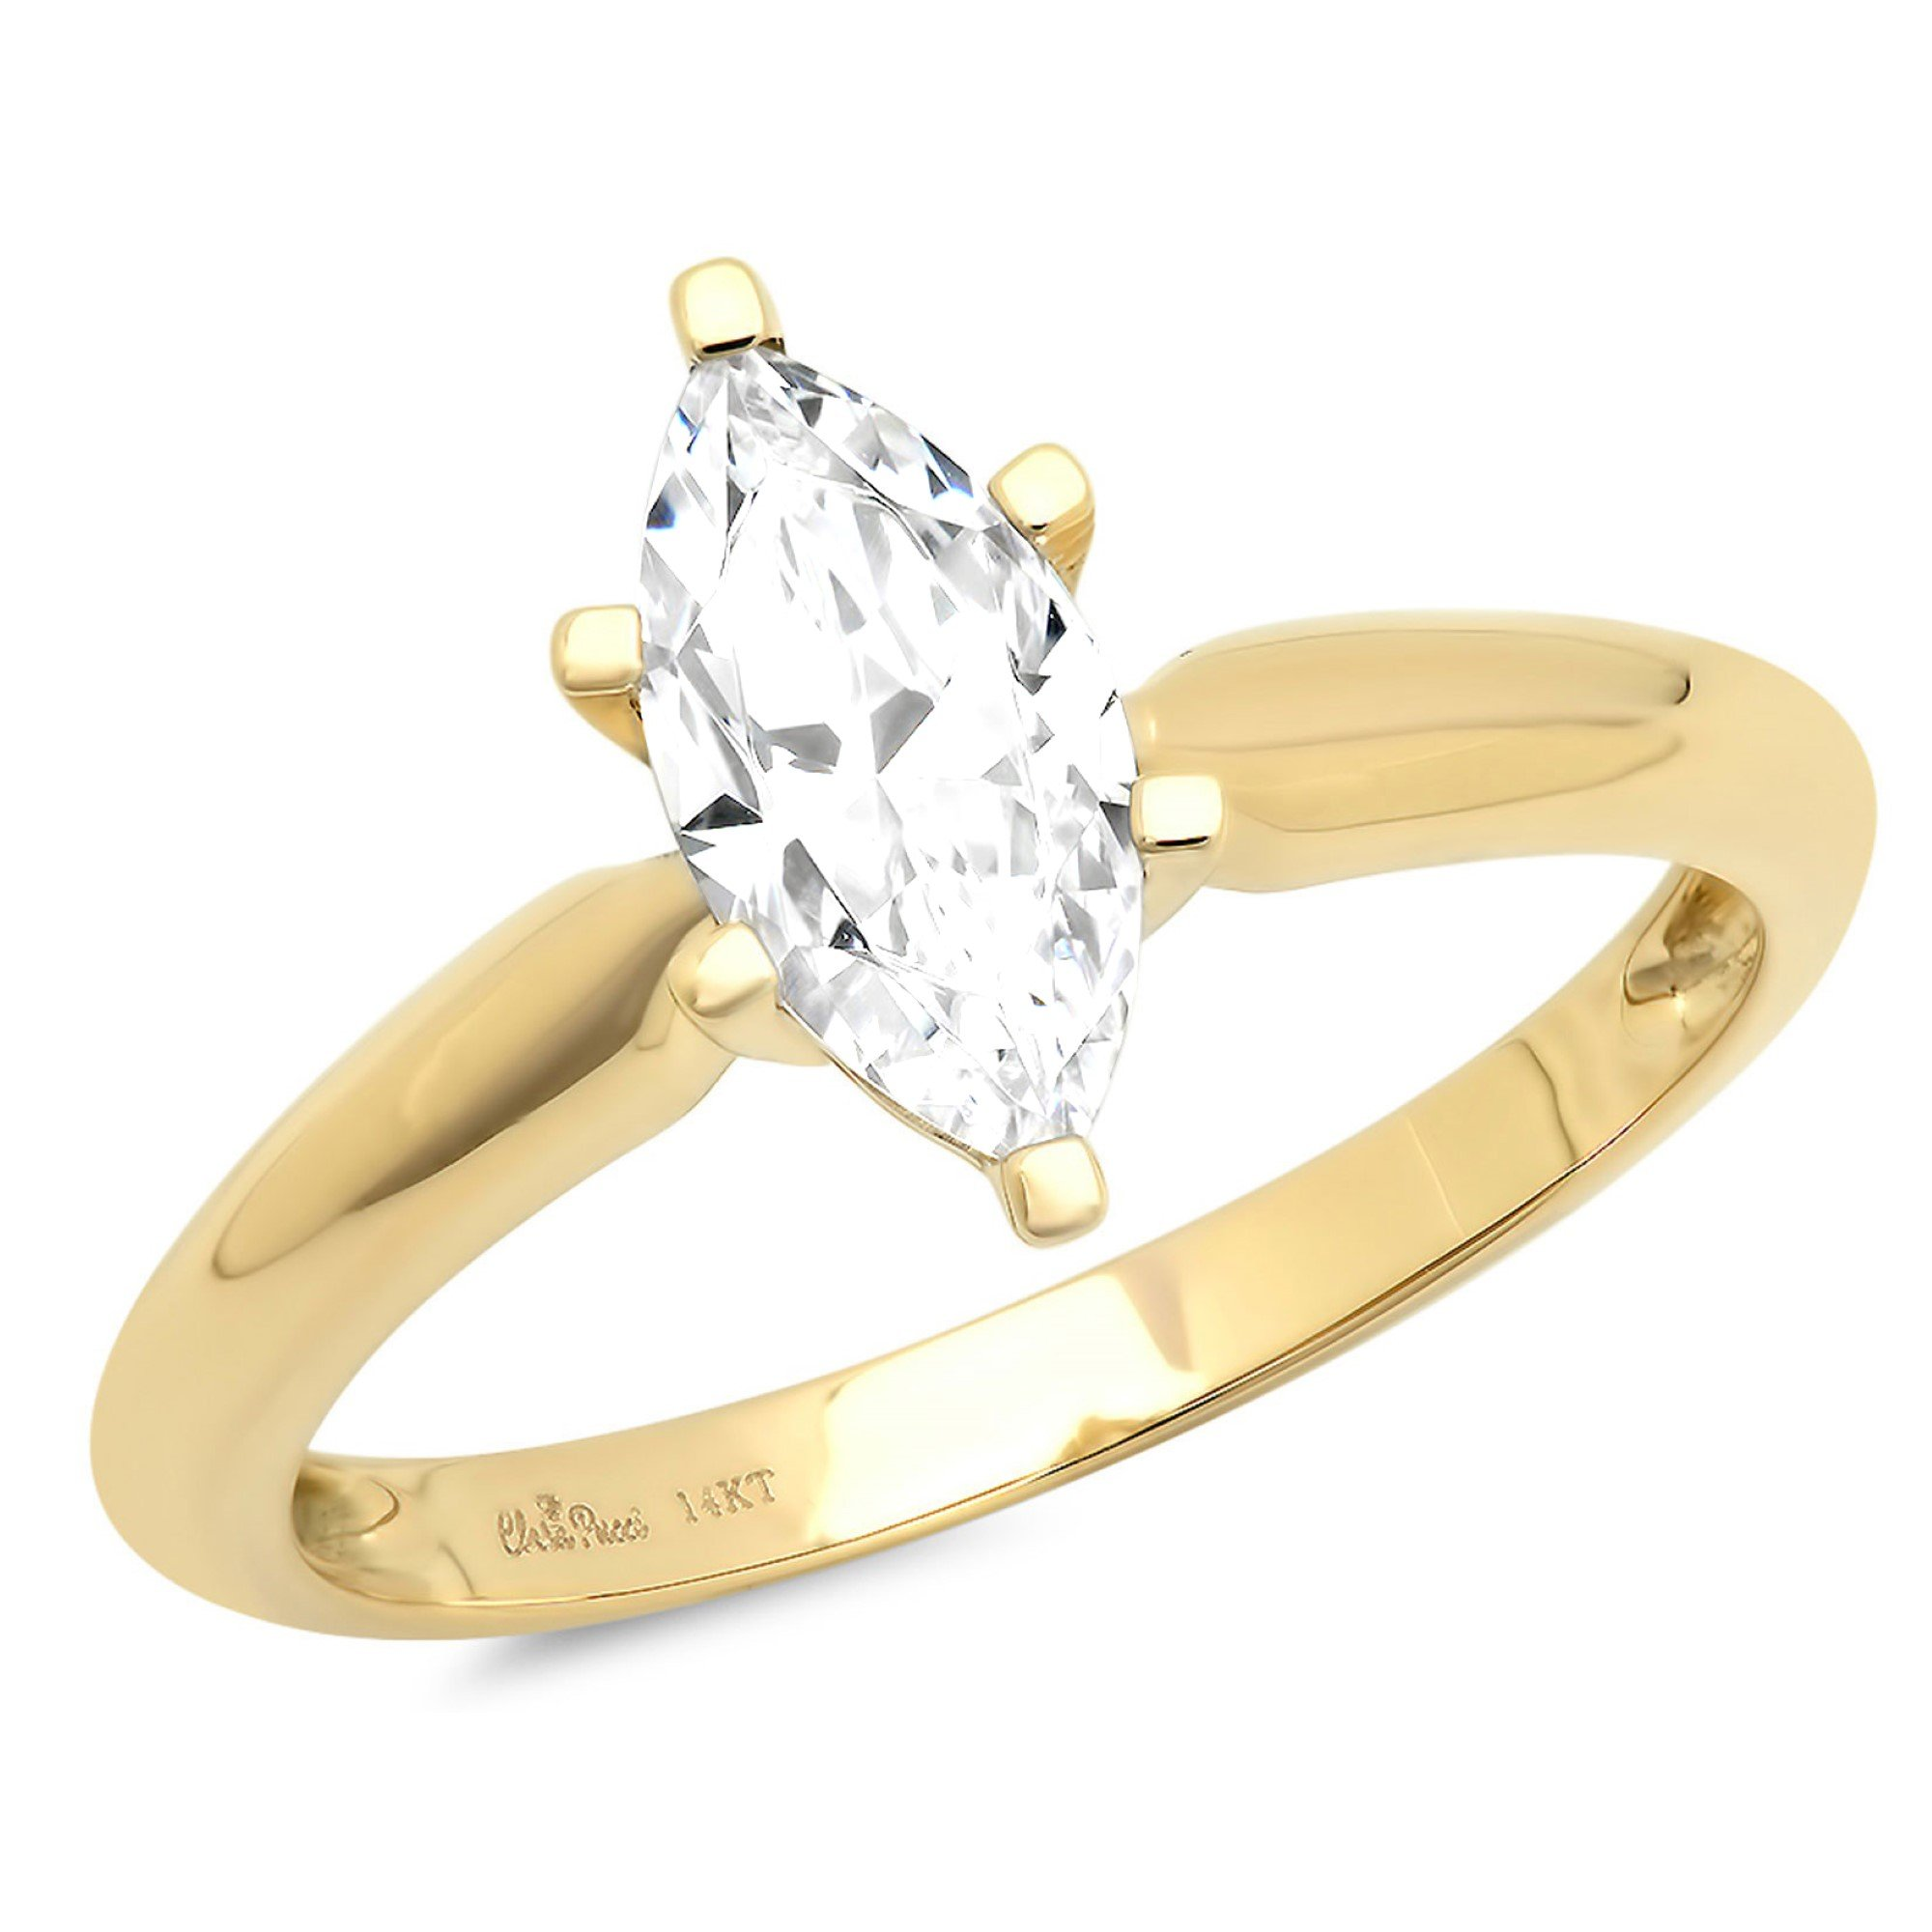 Marquise Brilliant Cut Classic Solitaire Designer Wedding Bridal Statement Anniversary Engagement Promise Ring Solid 14k Yellow Gold, 1.7ct, 3.75